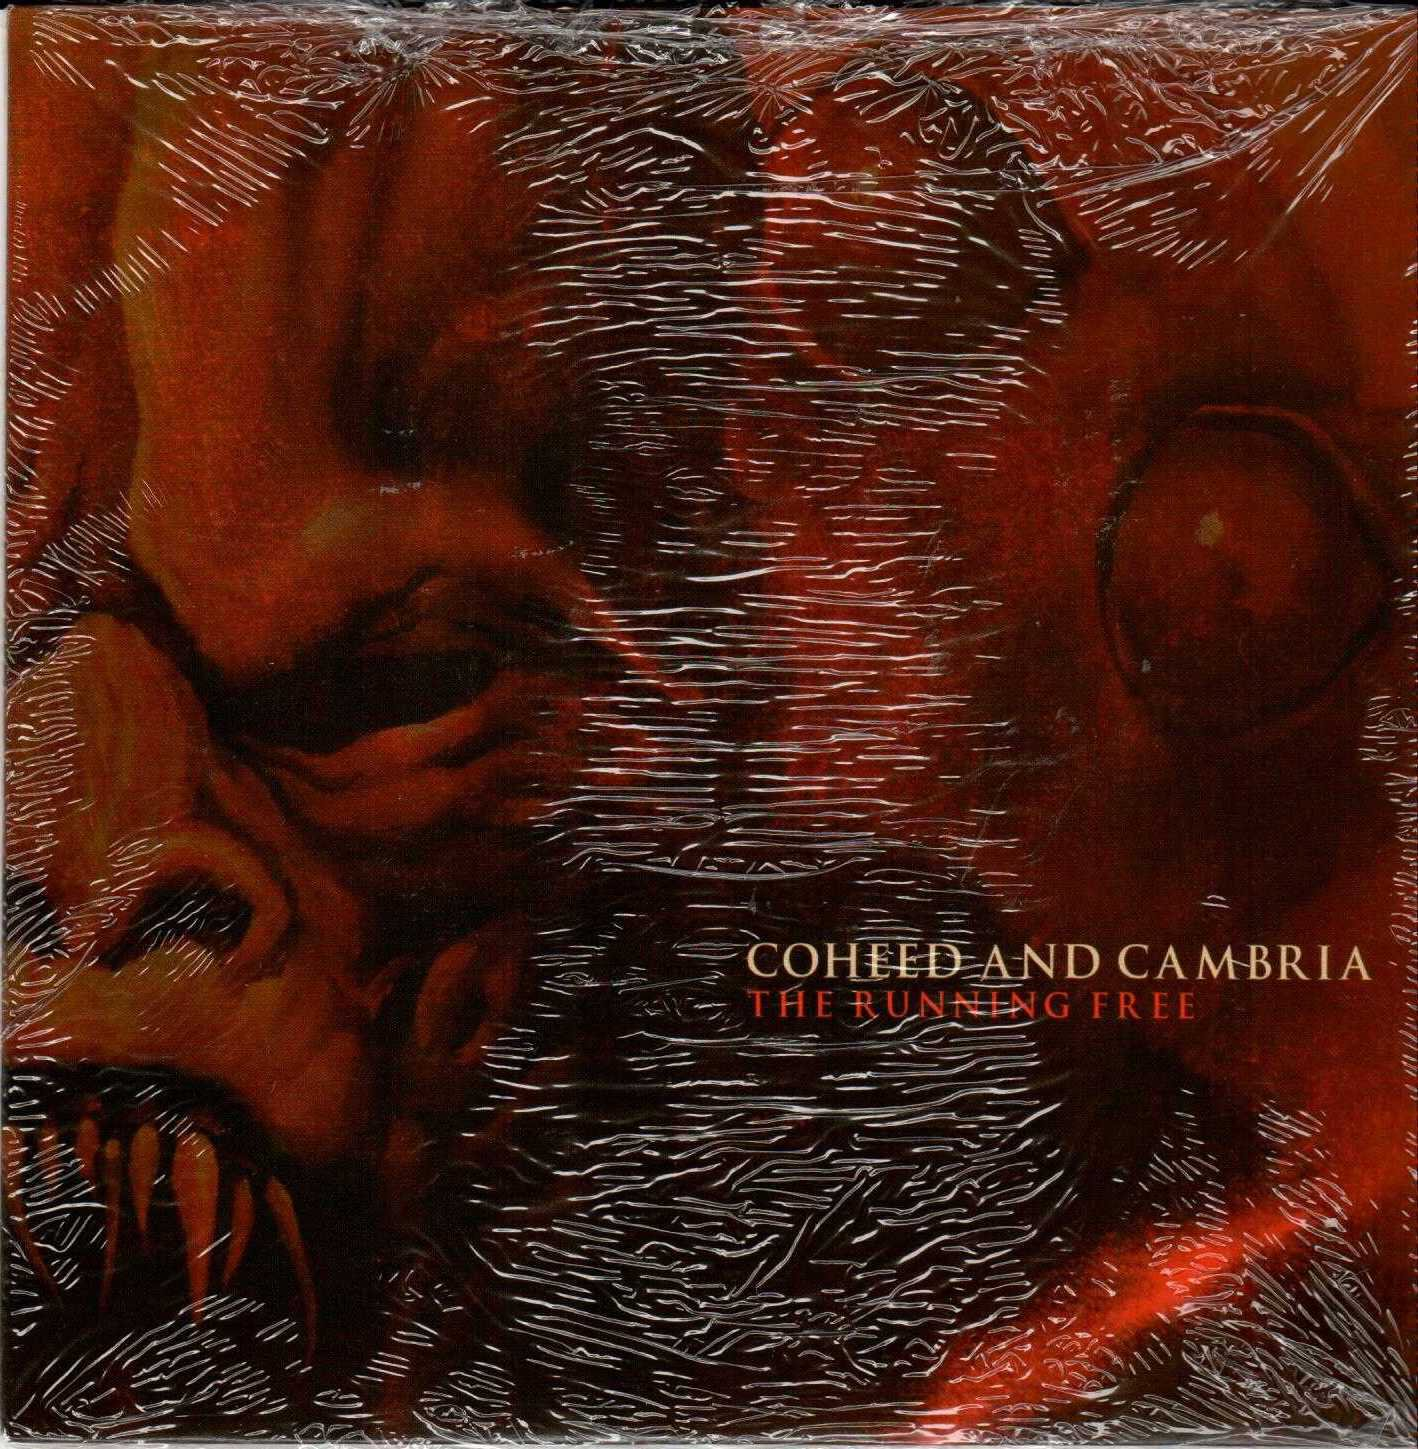 "COHEED AND CAMBRIA The Running Free 2007 US 2 Track Promotional 7"" Vinyl Single"